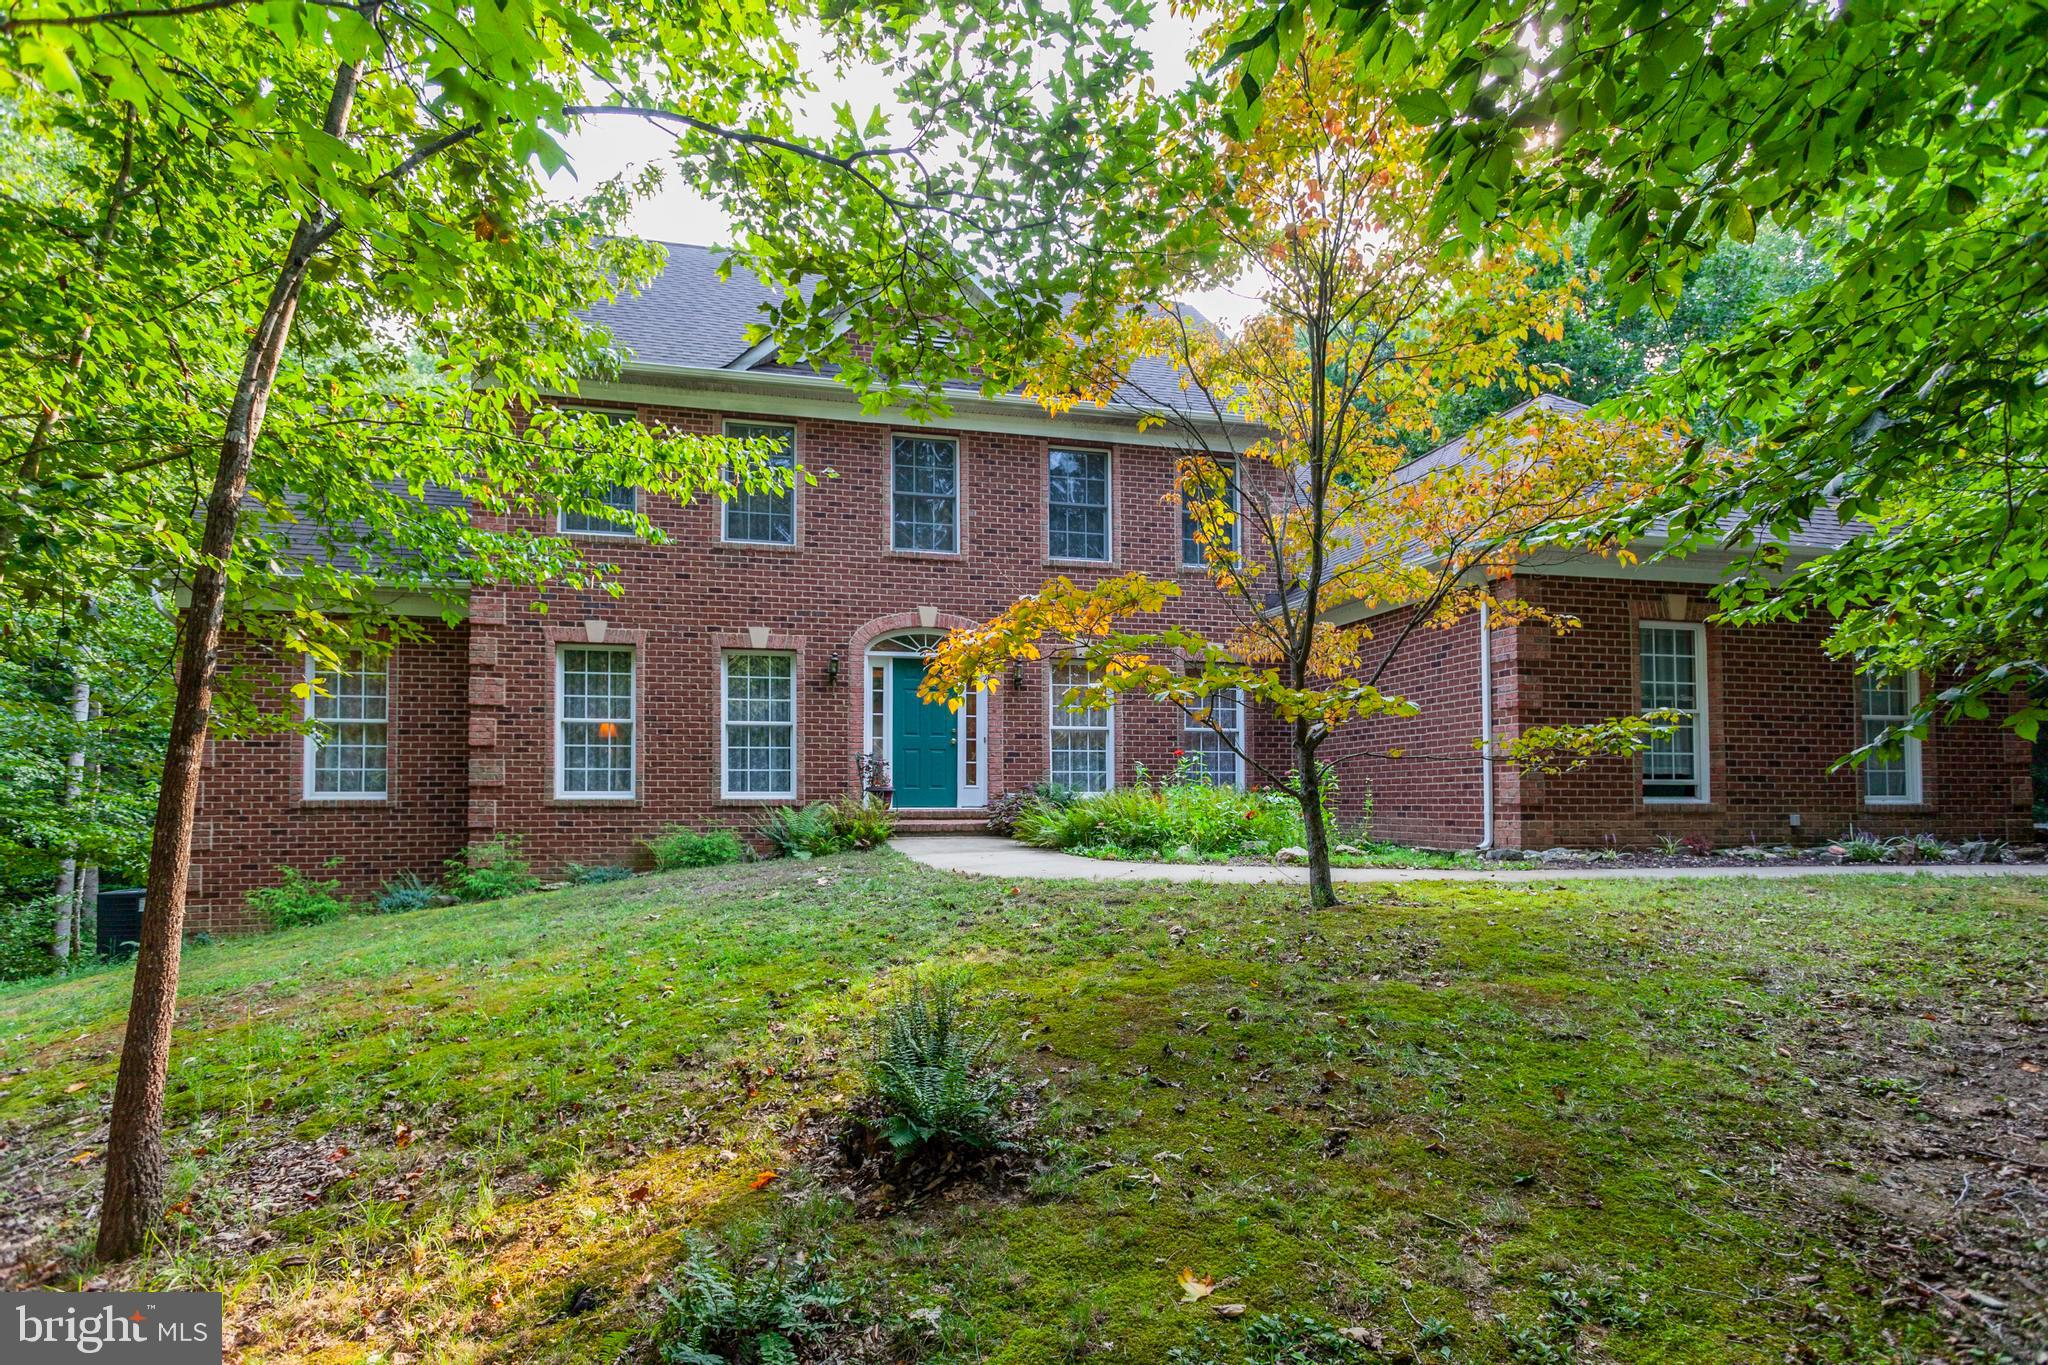 Welcome to 916 Decatur Rd nestled in highly sought-after Aquia Overlook. This 5 bedroom, 4.5 bathroo